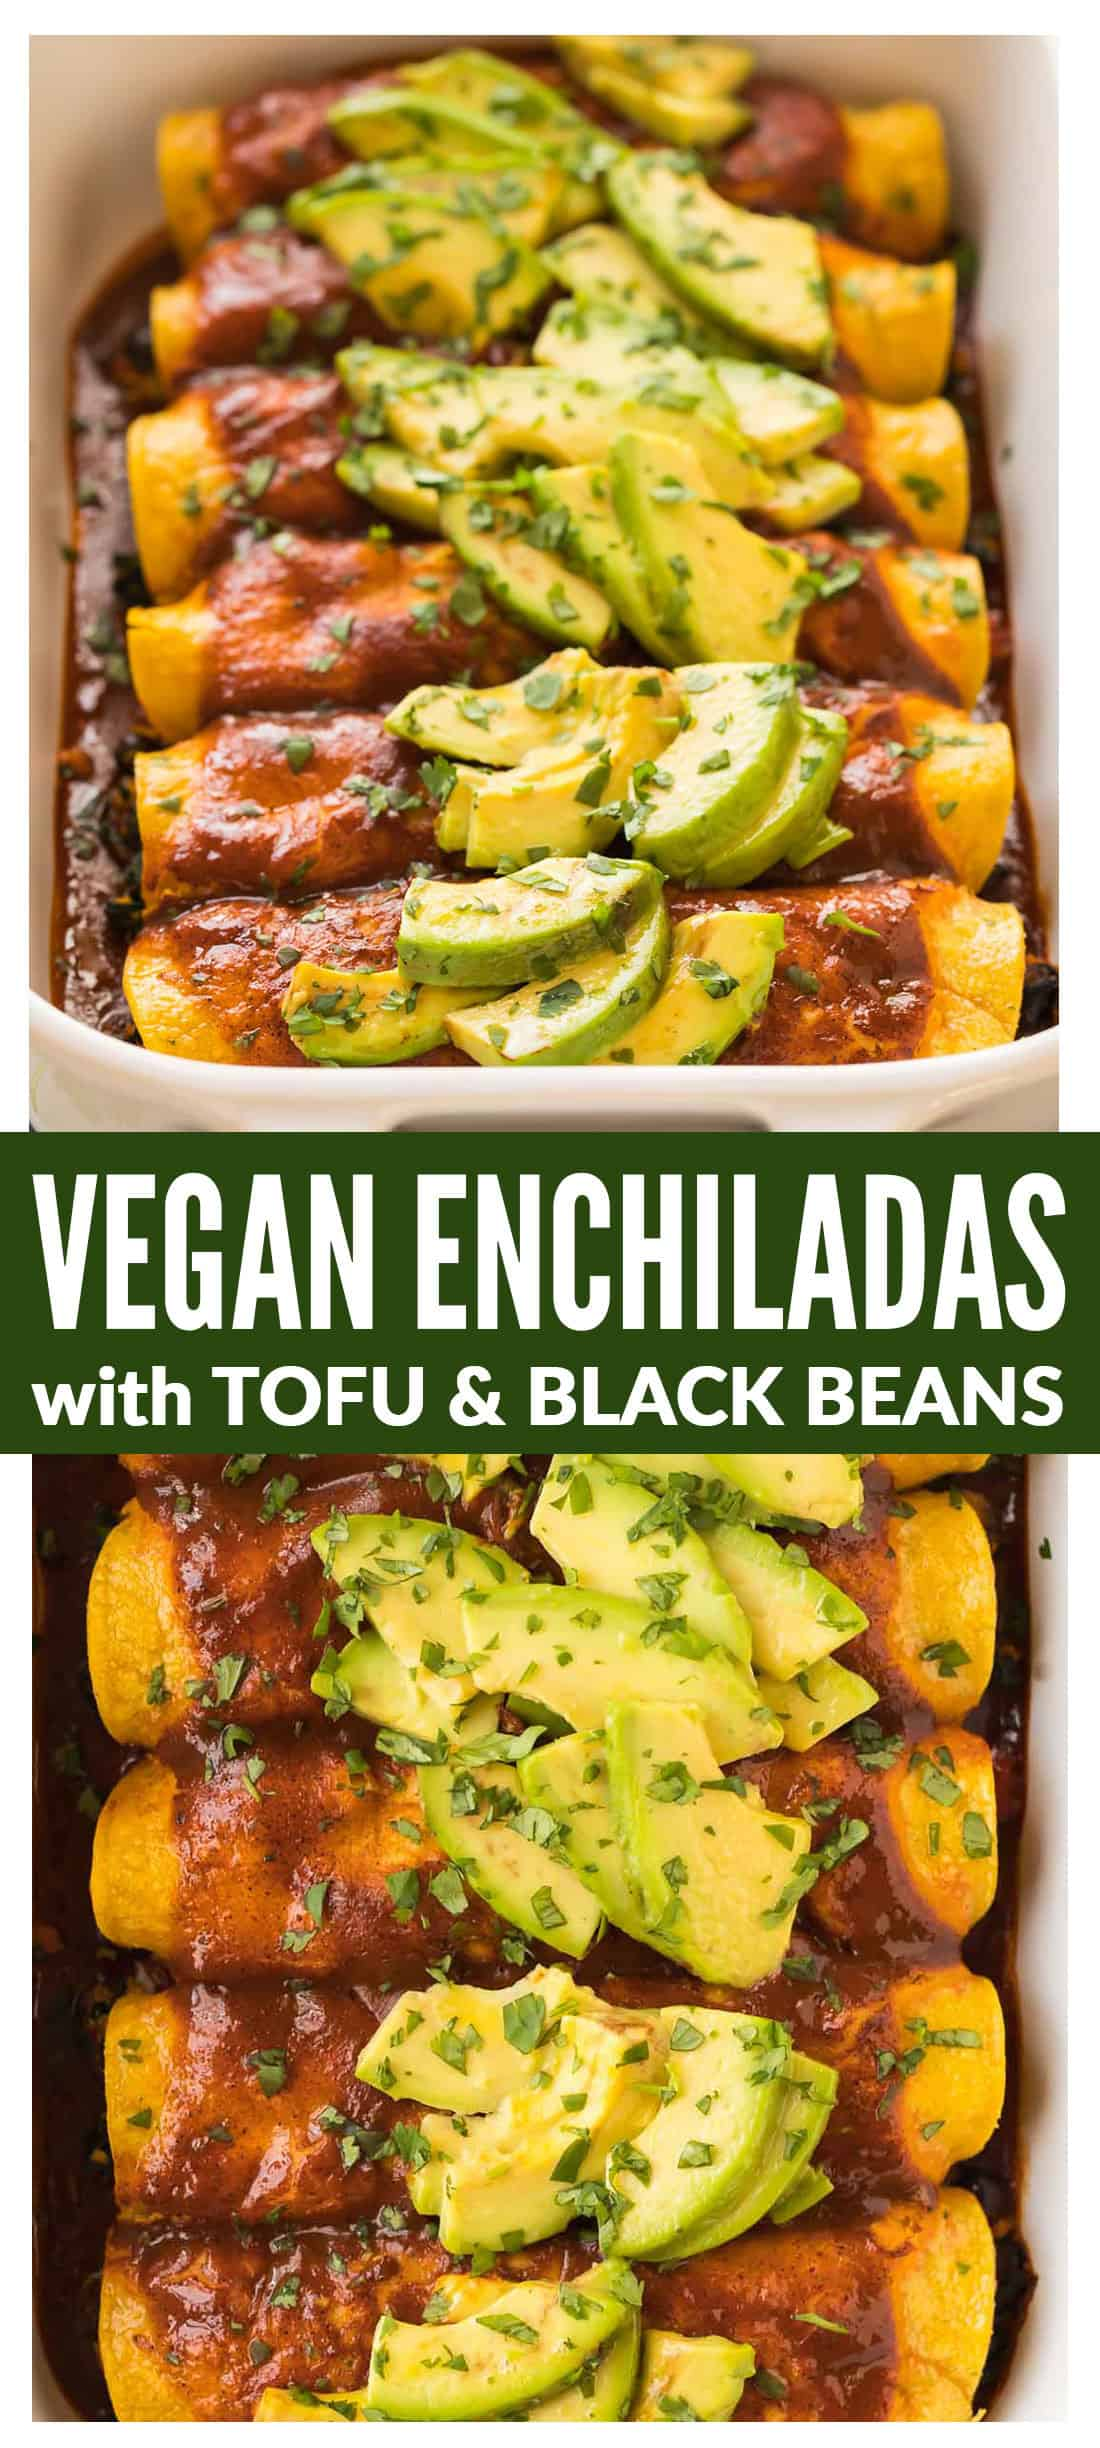 Easy Vegan Enchiladas with tofu, spinach, and black bean filling, topped with a rich and flavorful red enchilada sauce and avocado. This recipe is THE BEST! Healthy, packed with protein, entirely plant based, dairy free (you won't miss the cheese!), and gluten free. Casserole is freezer friendly and can be made in advance. #easy #vegan #enchiladas #healthy